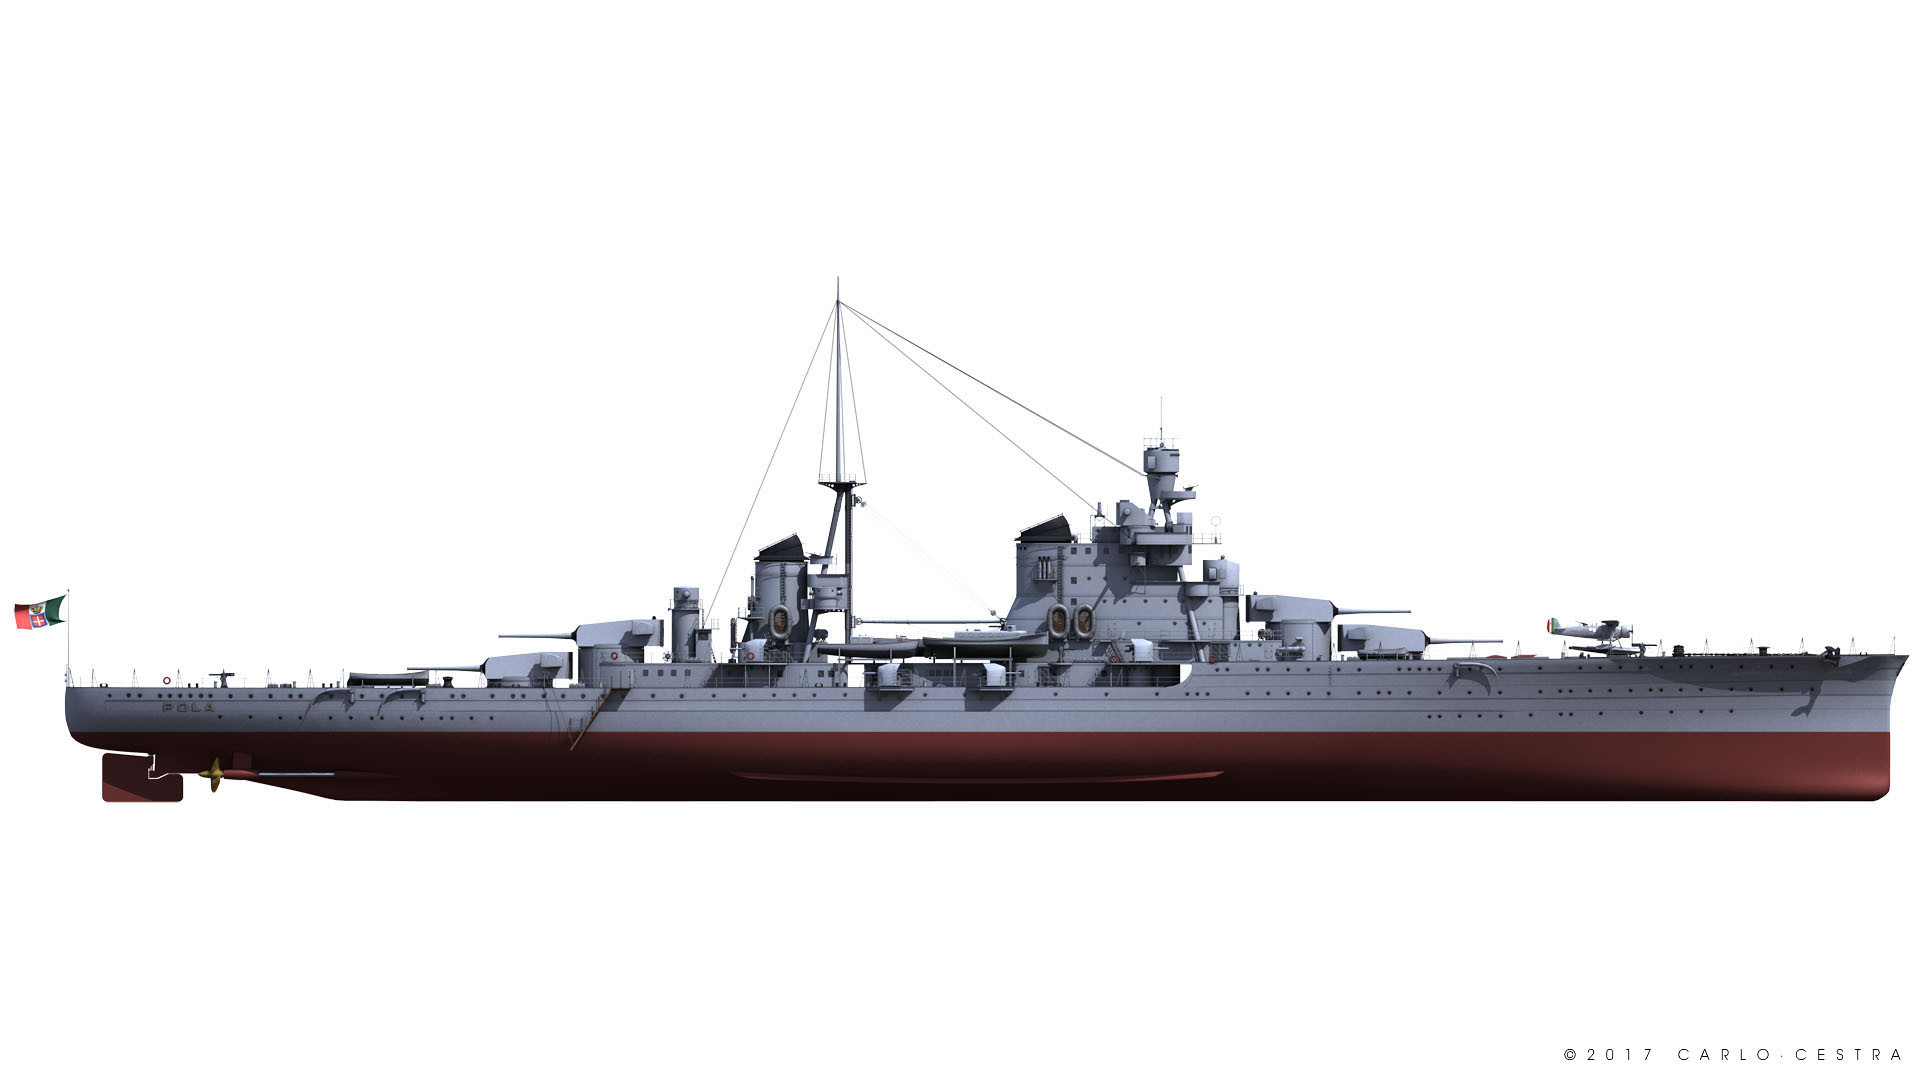 Carlo cestra carlo cestra starboard side 1941